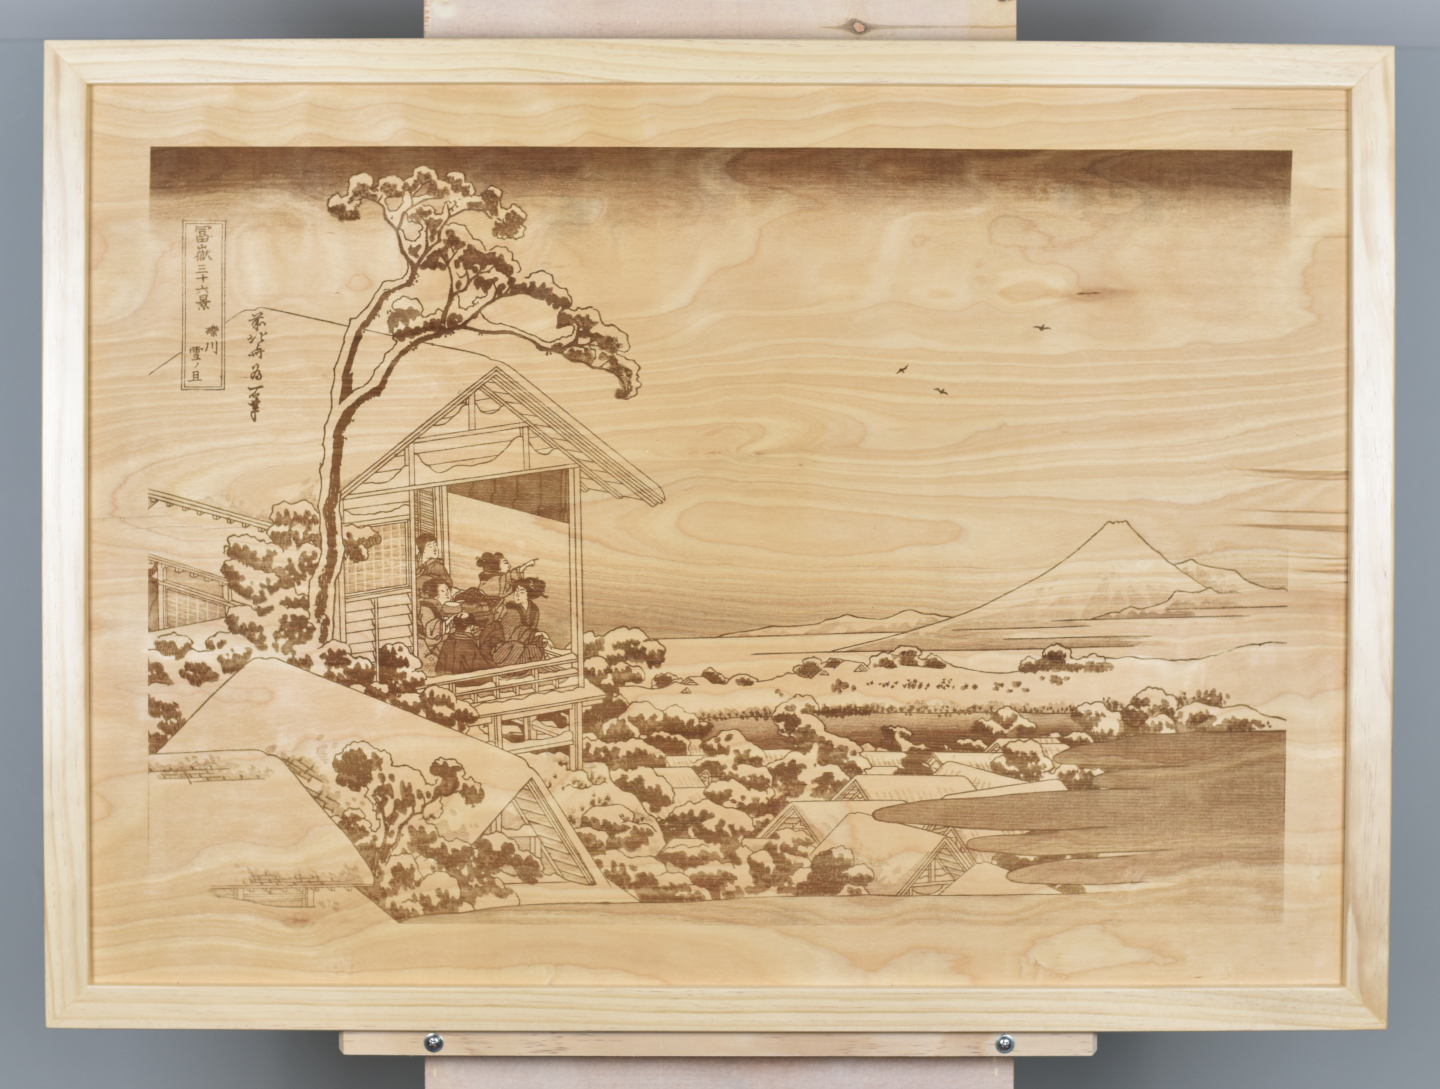 A wood burning (digital pyrograph) of men and women in a teahouse looking at Mount Fuji in the morning after a snowfall. One of the famous Thirty-six Views of Mount Fuji by Katsushika Hokusai.